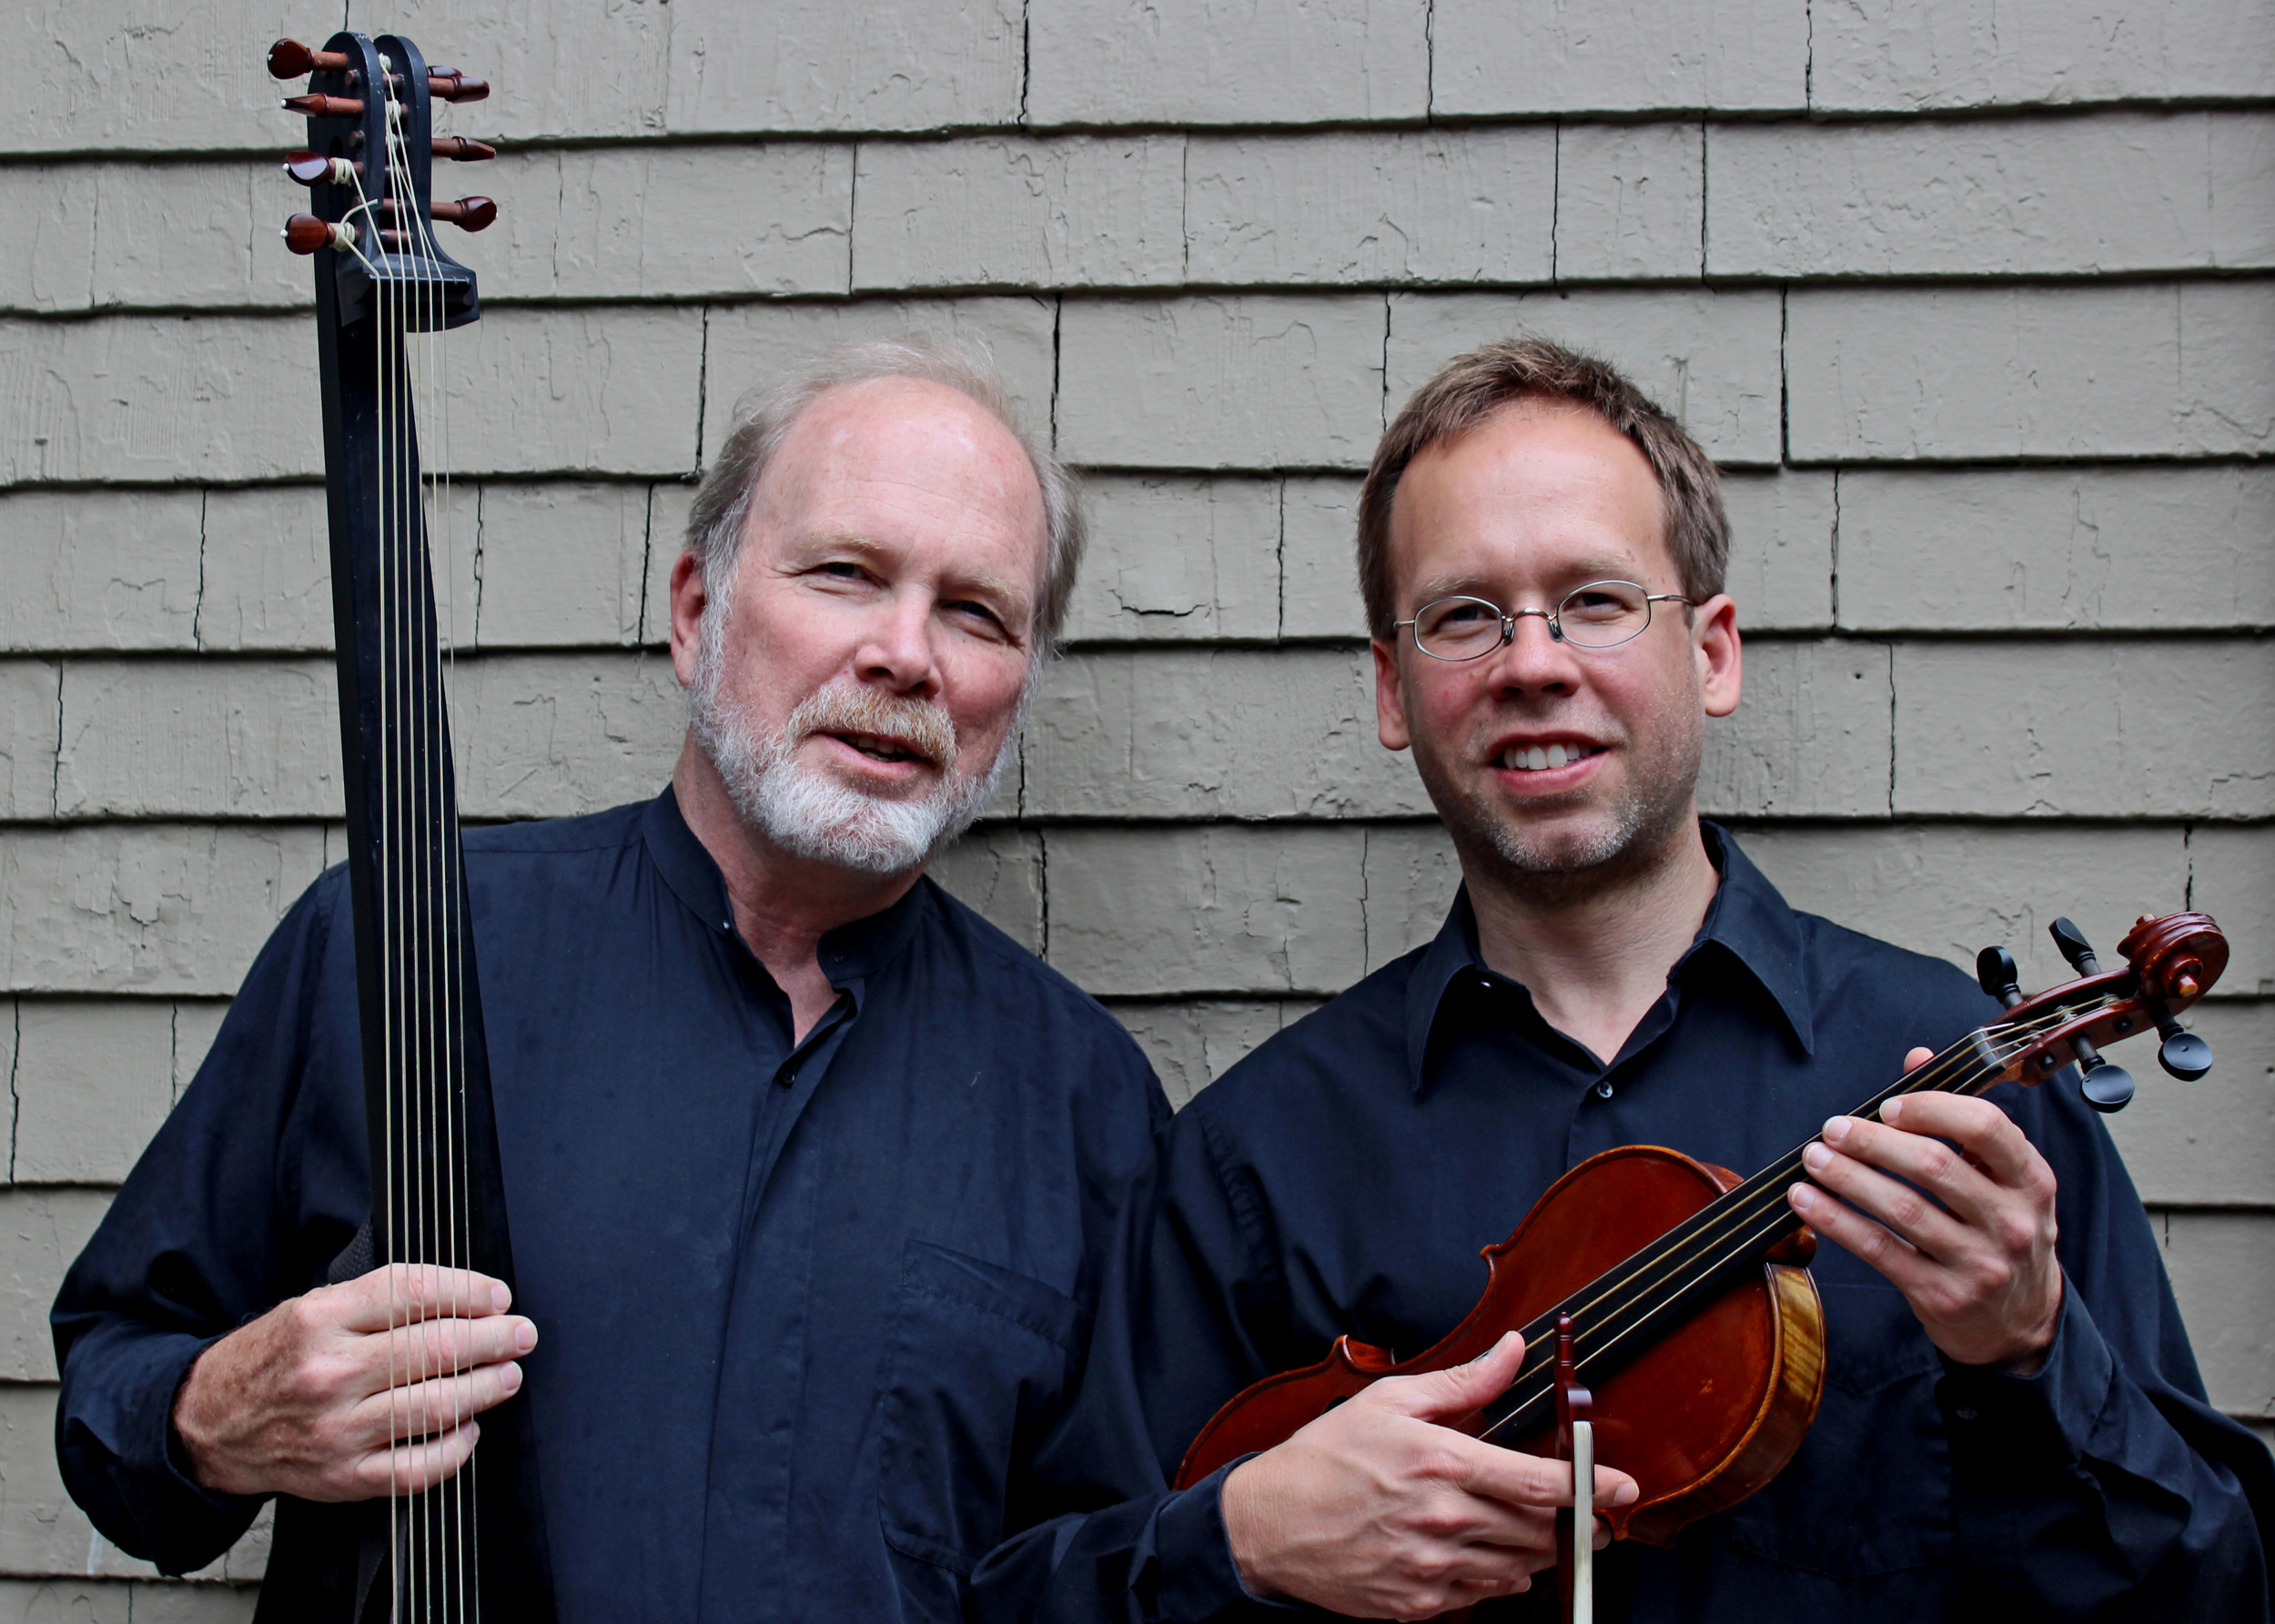 Using the violin and its early repertoire as a gateway, the duo Musicke's Cordes embraces a wide swath of 17th-century instrumental music including fantastic Italian sonatas, elegant French suites and rustic English variations on popular tunes. Musicke's Cordes--baroque violinist Samuel Breene and lutenist Jeffrey Noonan--offers programs that feature the experimental instrumental music of the 17th century.  Violinist Samuel Breene and lutenist Jeffrey Noonan met in 2013 at the Newberry Library in Chicago as participants in a colloquium sponsored by the National Endowment for the Humanities. Informal reading sessions that summer evolved into a performance plan and the duo has performed and taught in the Midwest and on the East Coast. The 2016 - 2017 season featured concerts in St. Louis as well up and down the eastern seaboard. The ensemble's 2017 - 2018 season included concerts and residencies in Colorado, Missouri, Kentucky and Rhode Island. Their 2018 - 2019 season features a program titled Music from the Chapels and Courts of Germany with music by German and Italian composers active through the 17th century. Performances include fall concerts on college campuses in Missouri and on concert series appearances in Indiana while the spring brings concerts across New England. In the spring of 2019, the duo will premiere a new program focused on violinists and violin music tied to England through the 17th century. The concert will include music by William Brade, Matthew Locke, Daniel Purcell, Nicola Matteis, Arcangelo Corelli and Antonio Vivaldi.      La Petite Brise